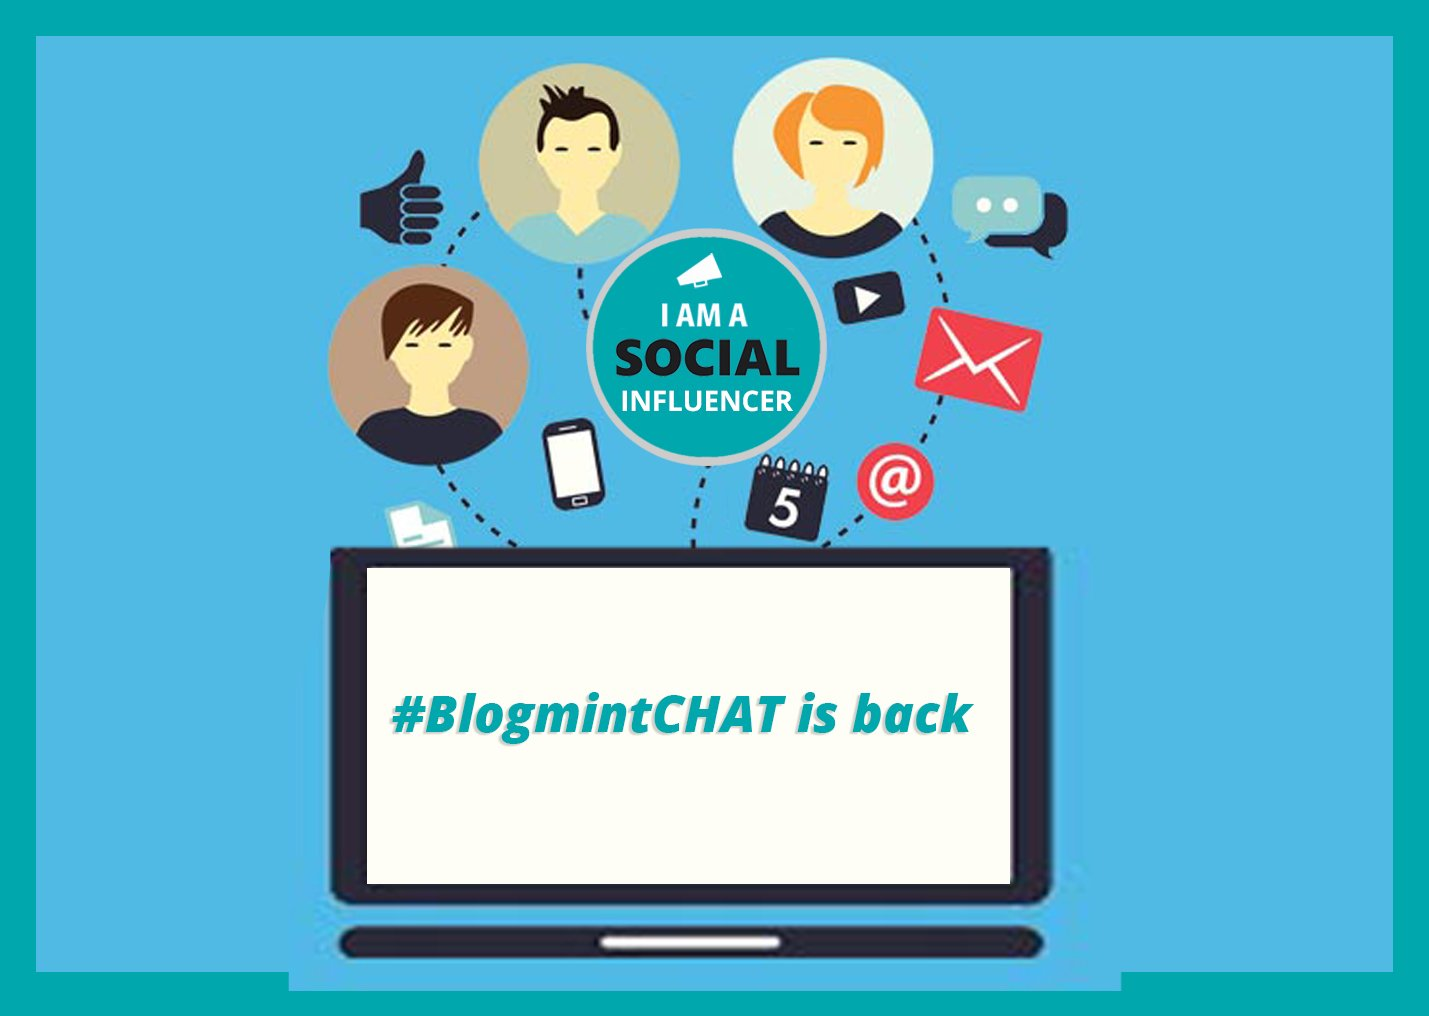 Mark your calendars!  Do not forget to Join us this Tuesday, 4:00 p.m to chat about Food Blogging #BlogmintCHAT #TwitterChat @saltandsandals https://t.co/HhWU2qvc8Z